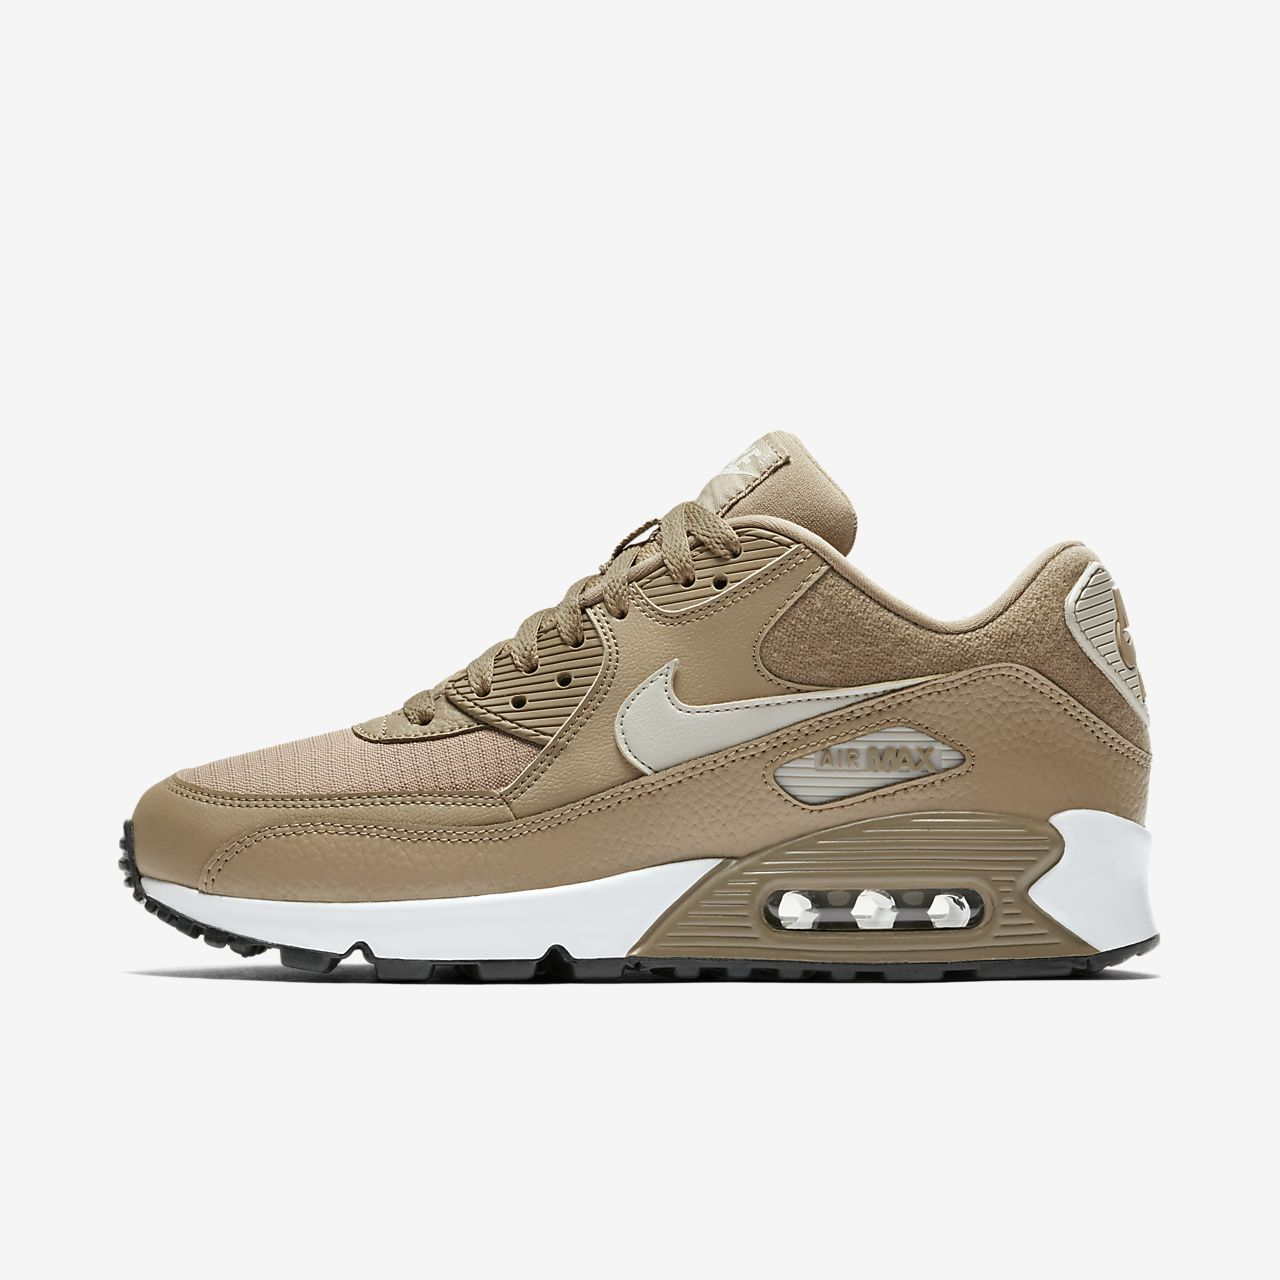 best value e3e63 216c1 ... real nike air max 90 sko til kvinder ddbf4 dd947